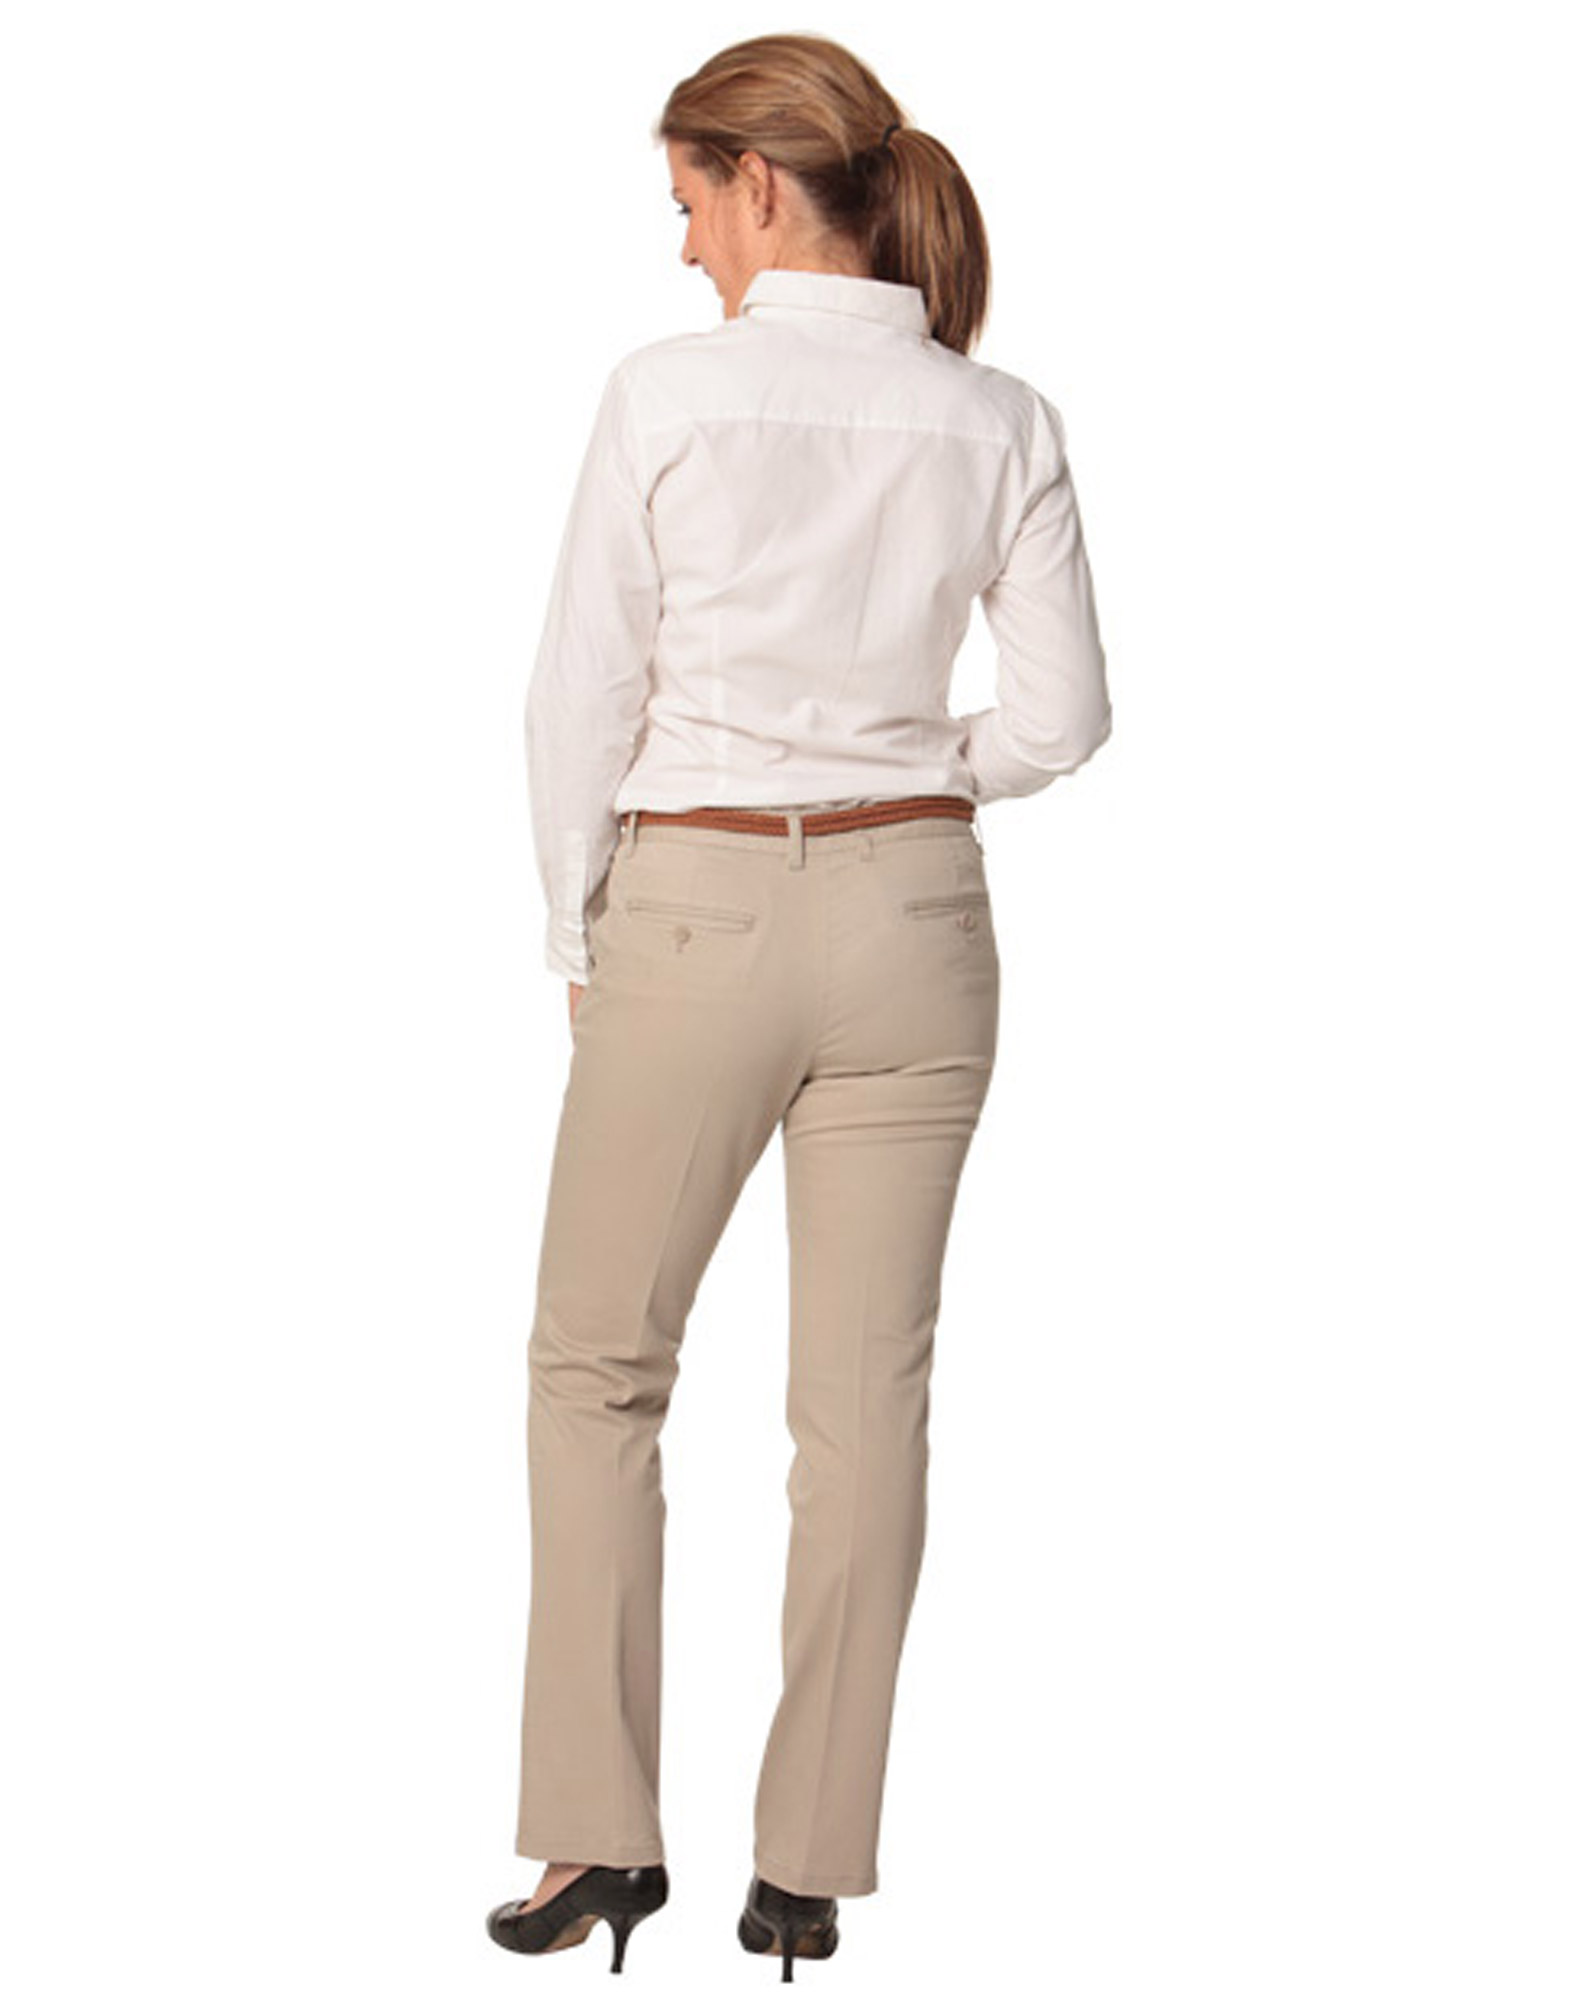 M9460 Women's Chino Pants